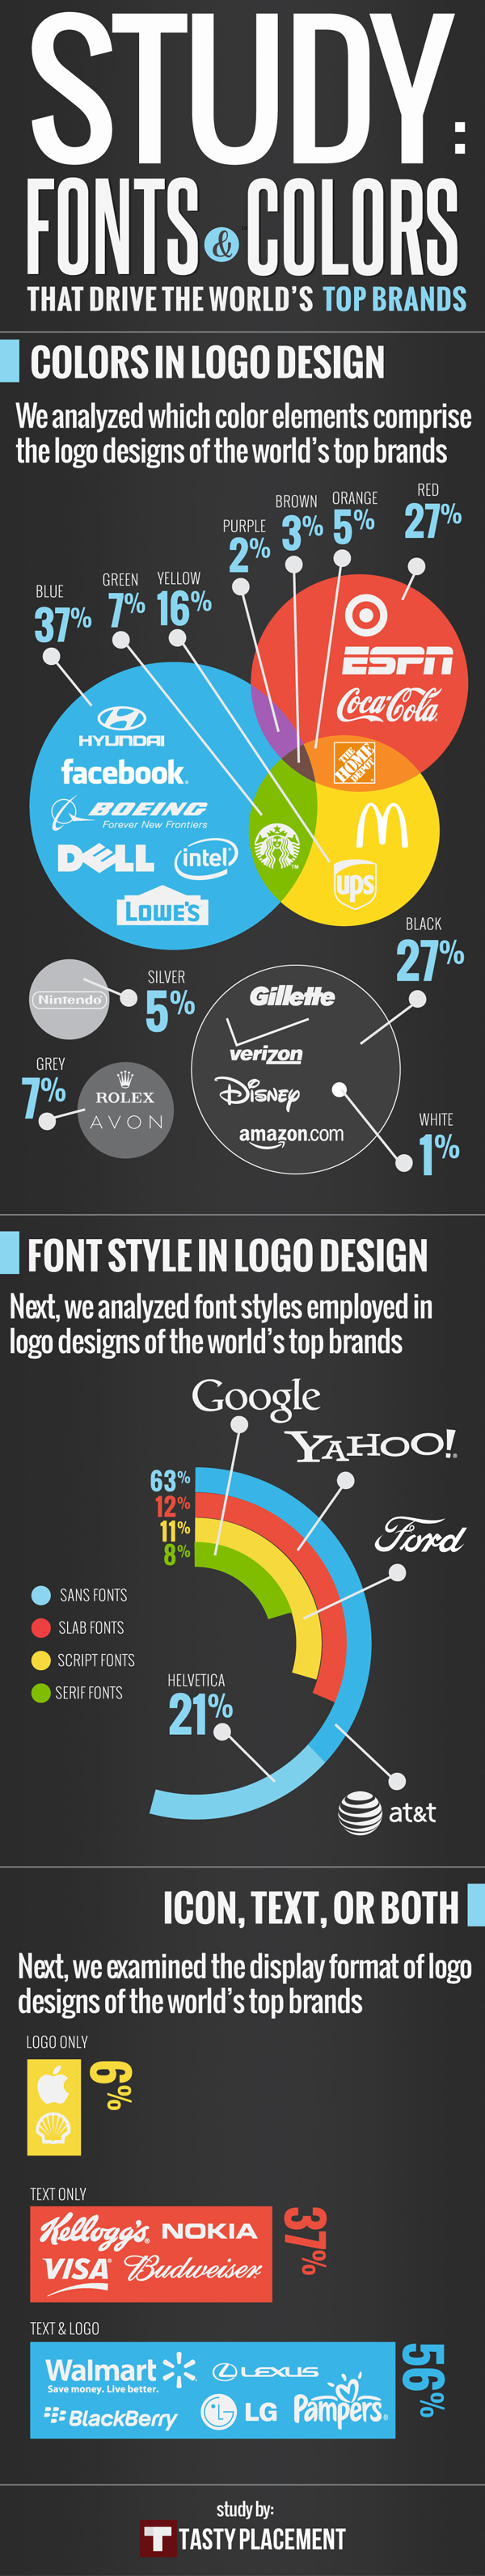 Logo-and-Font-Color-Infographic